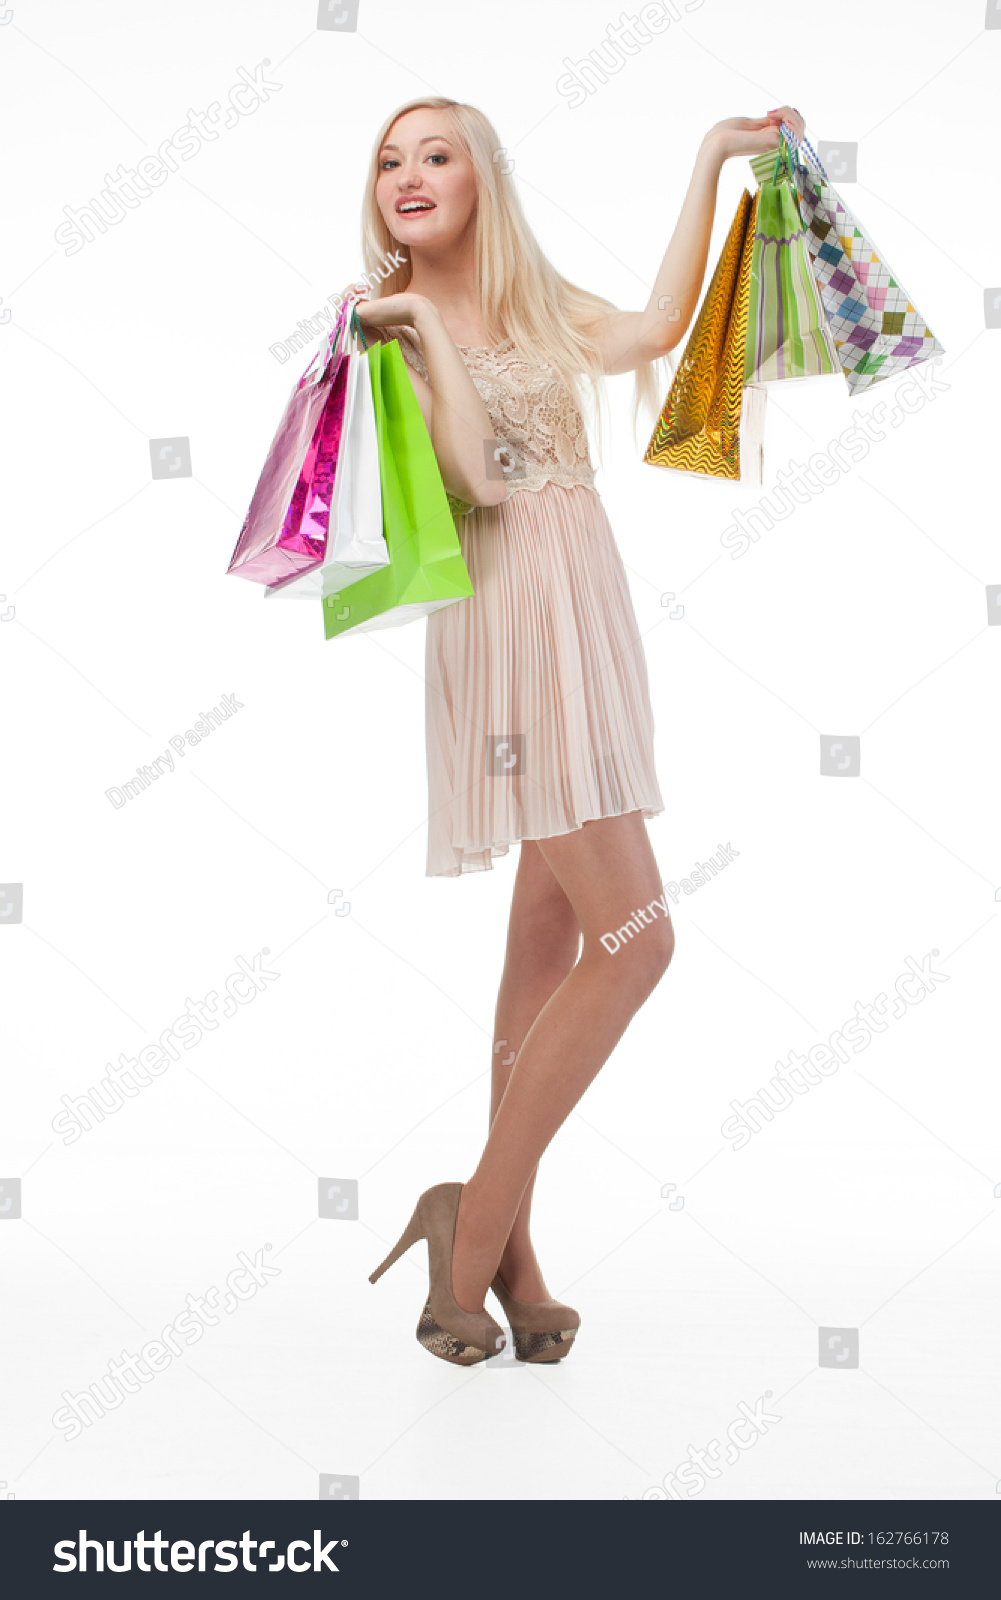 Woman posing with shopping bags isolated on white background full - Beautiful Young Woman Posing With Shopping Bags Isolated On White Background